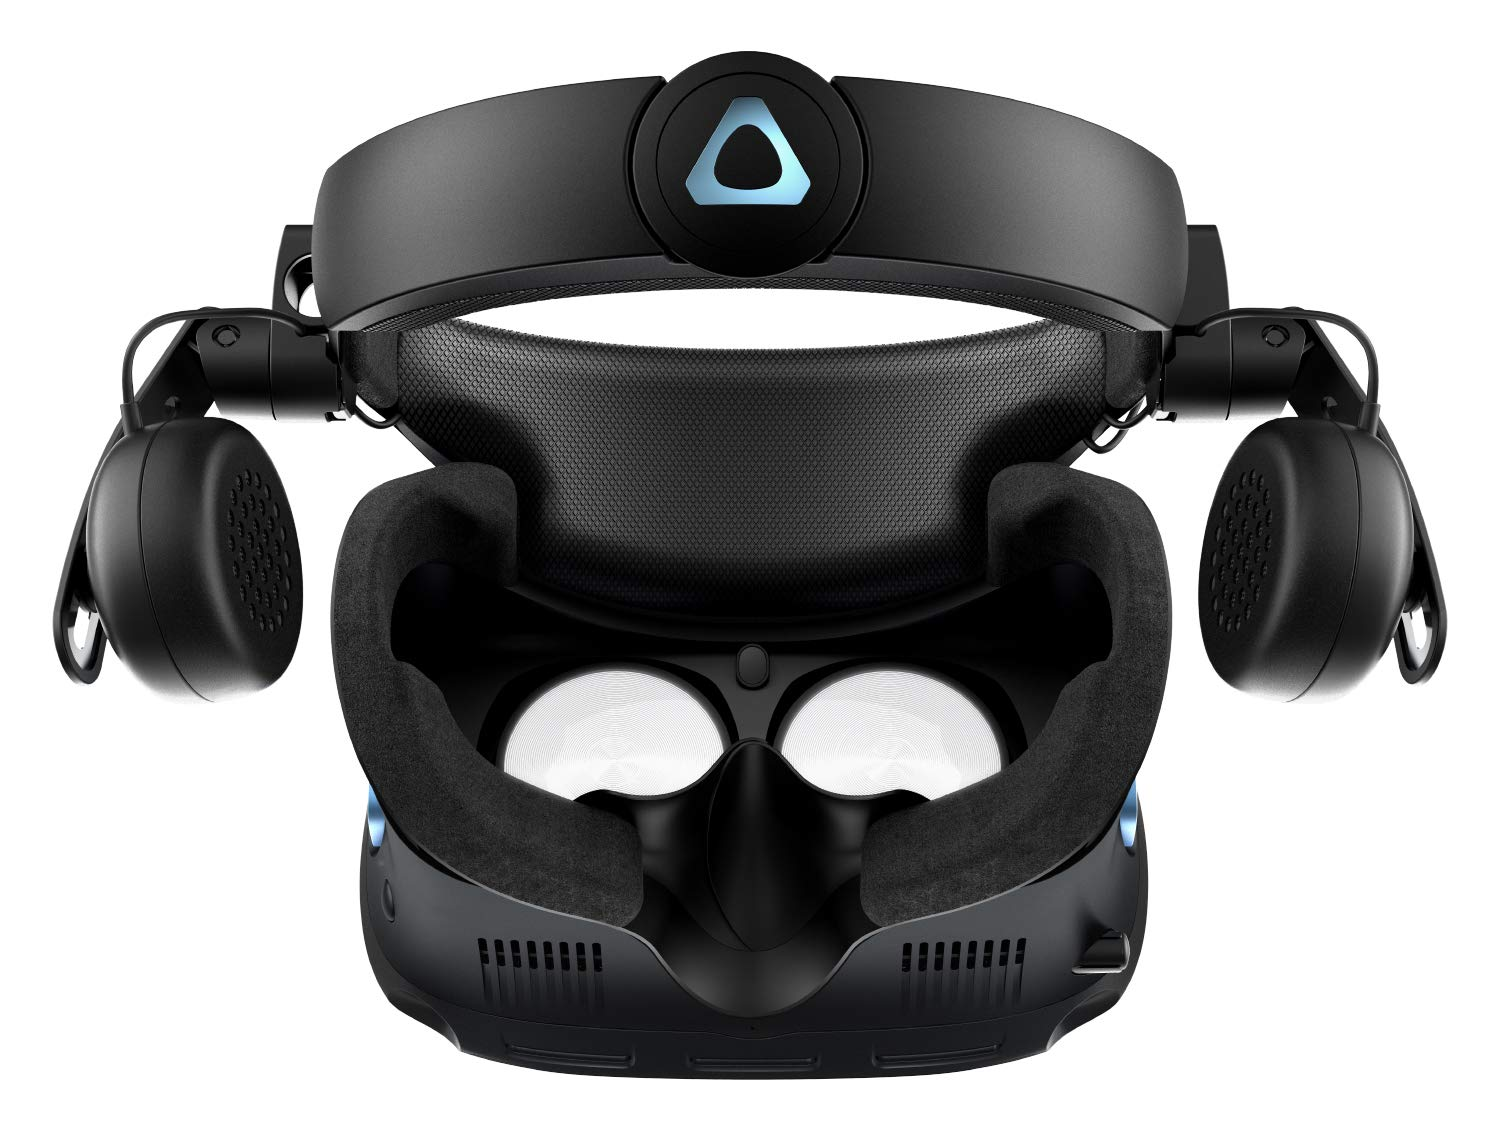 HTC VIVE Cosmos Elite Virtual Reality System